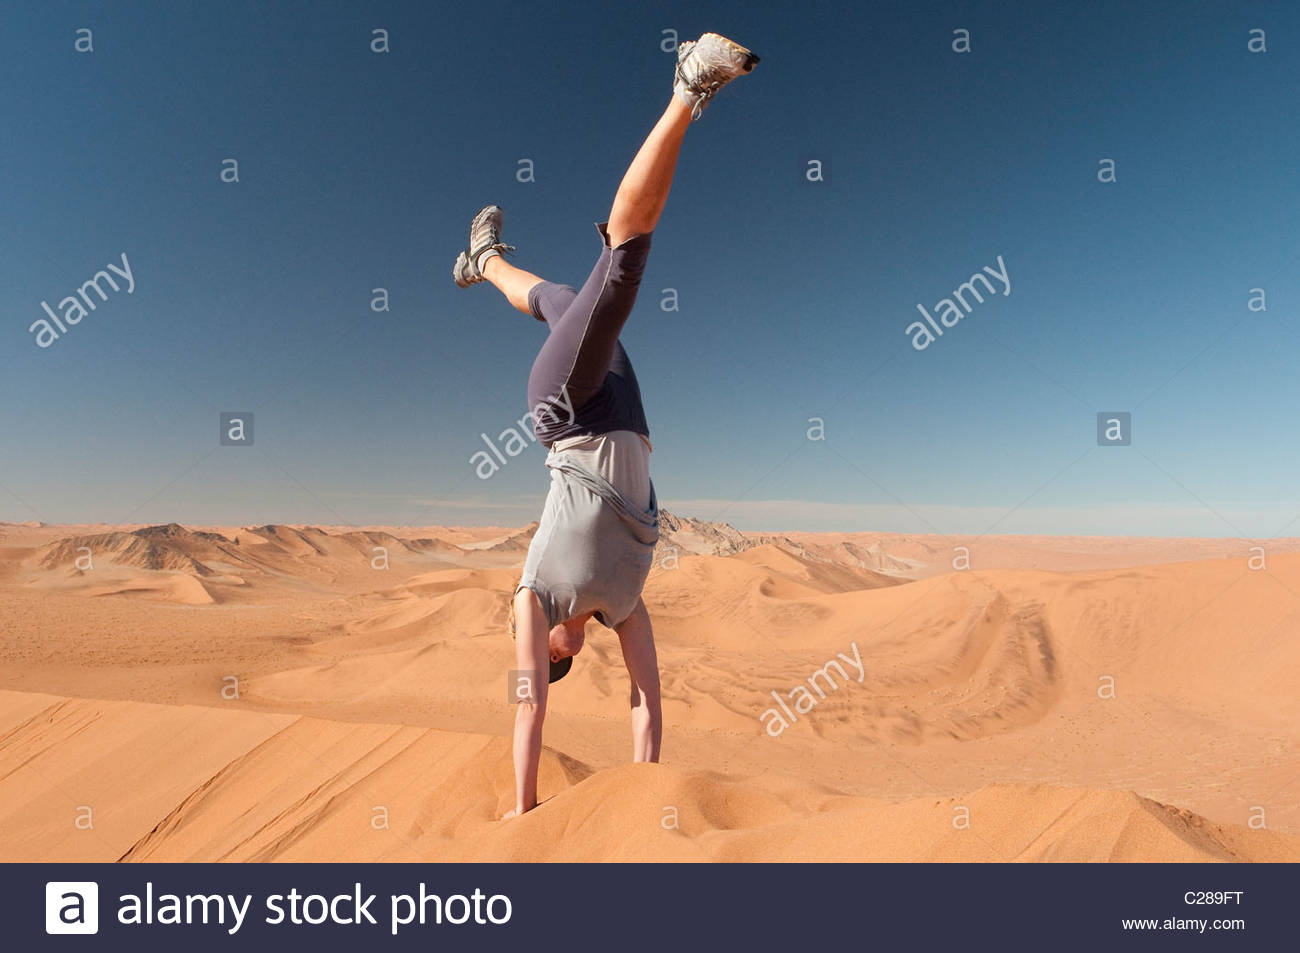 A woman does a hand stand on a sand dune in the Namib Desert, Namibia. Stock Photo